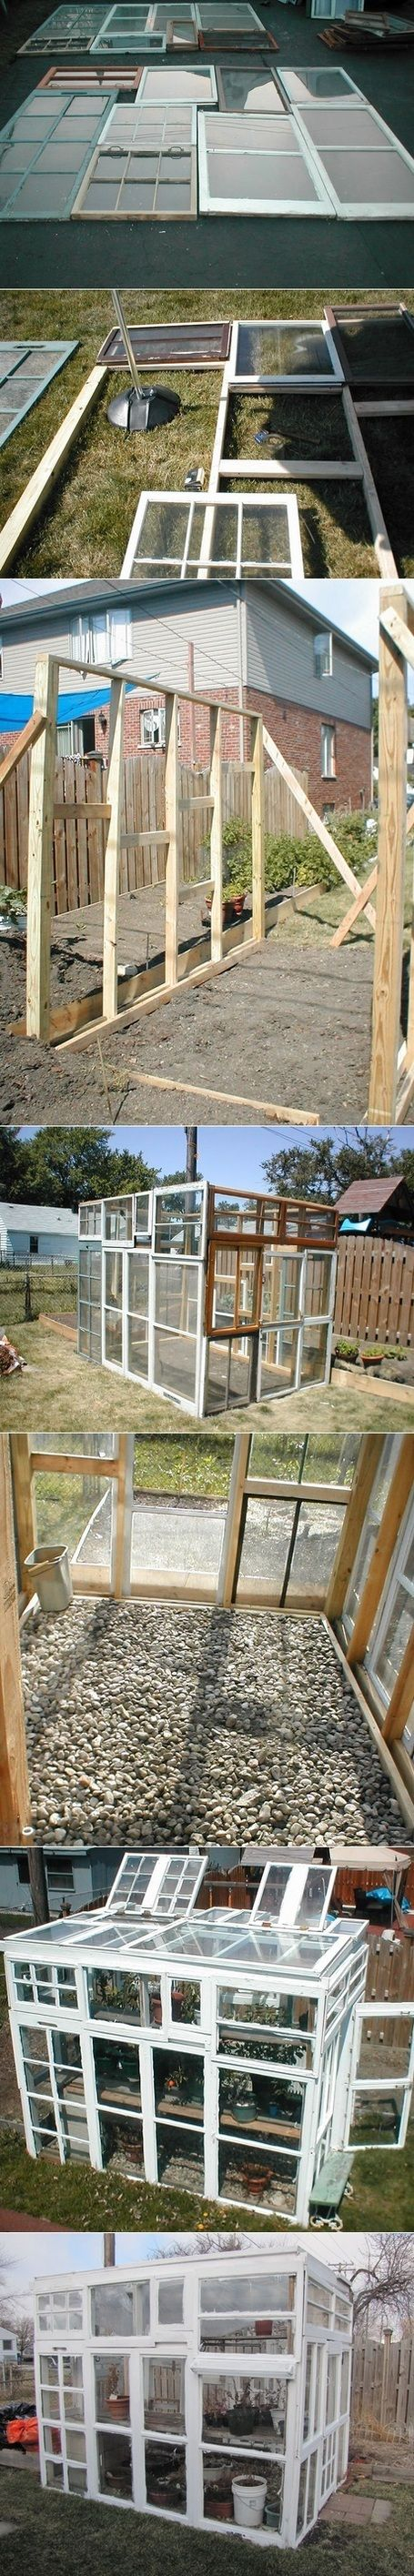 2. Square Greenhouse